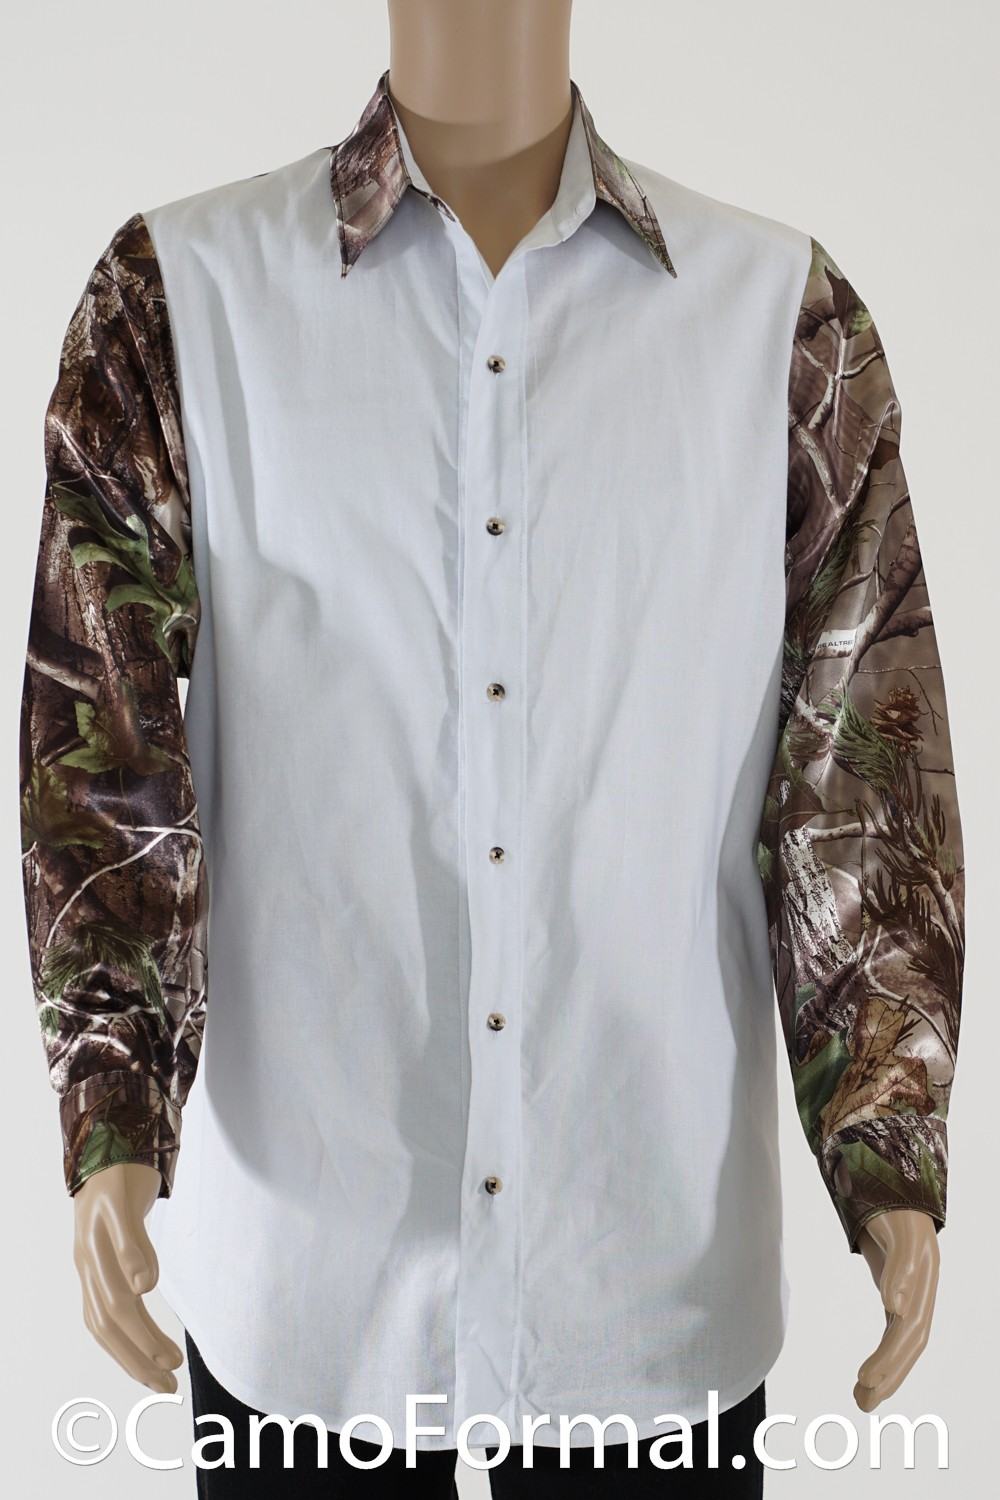 Whether you are looking for a traditional wedding dress or thinking about a unique look with one of our camo accented styles, A TOUCH OF CAMO offers you custom, individualized, high quality, low price wedding gowns and formalwear options that rival most major wedding gown manufacturers.